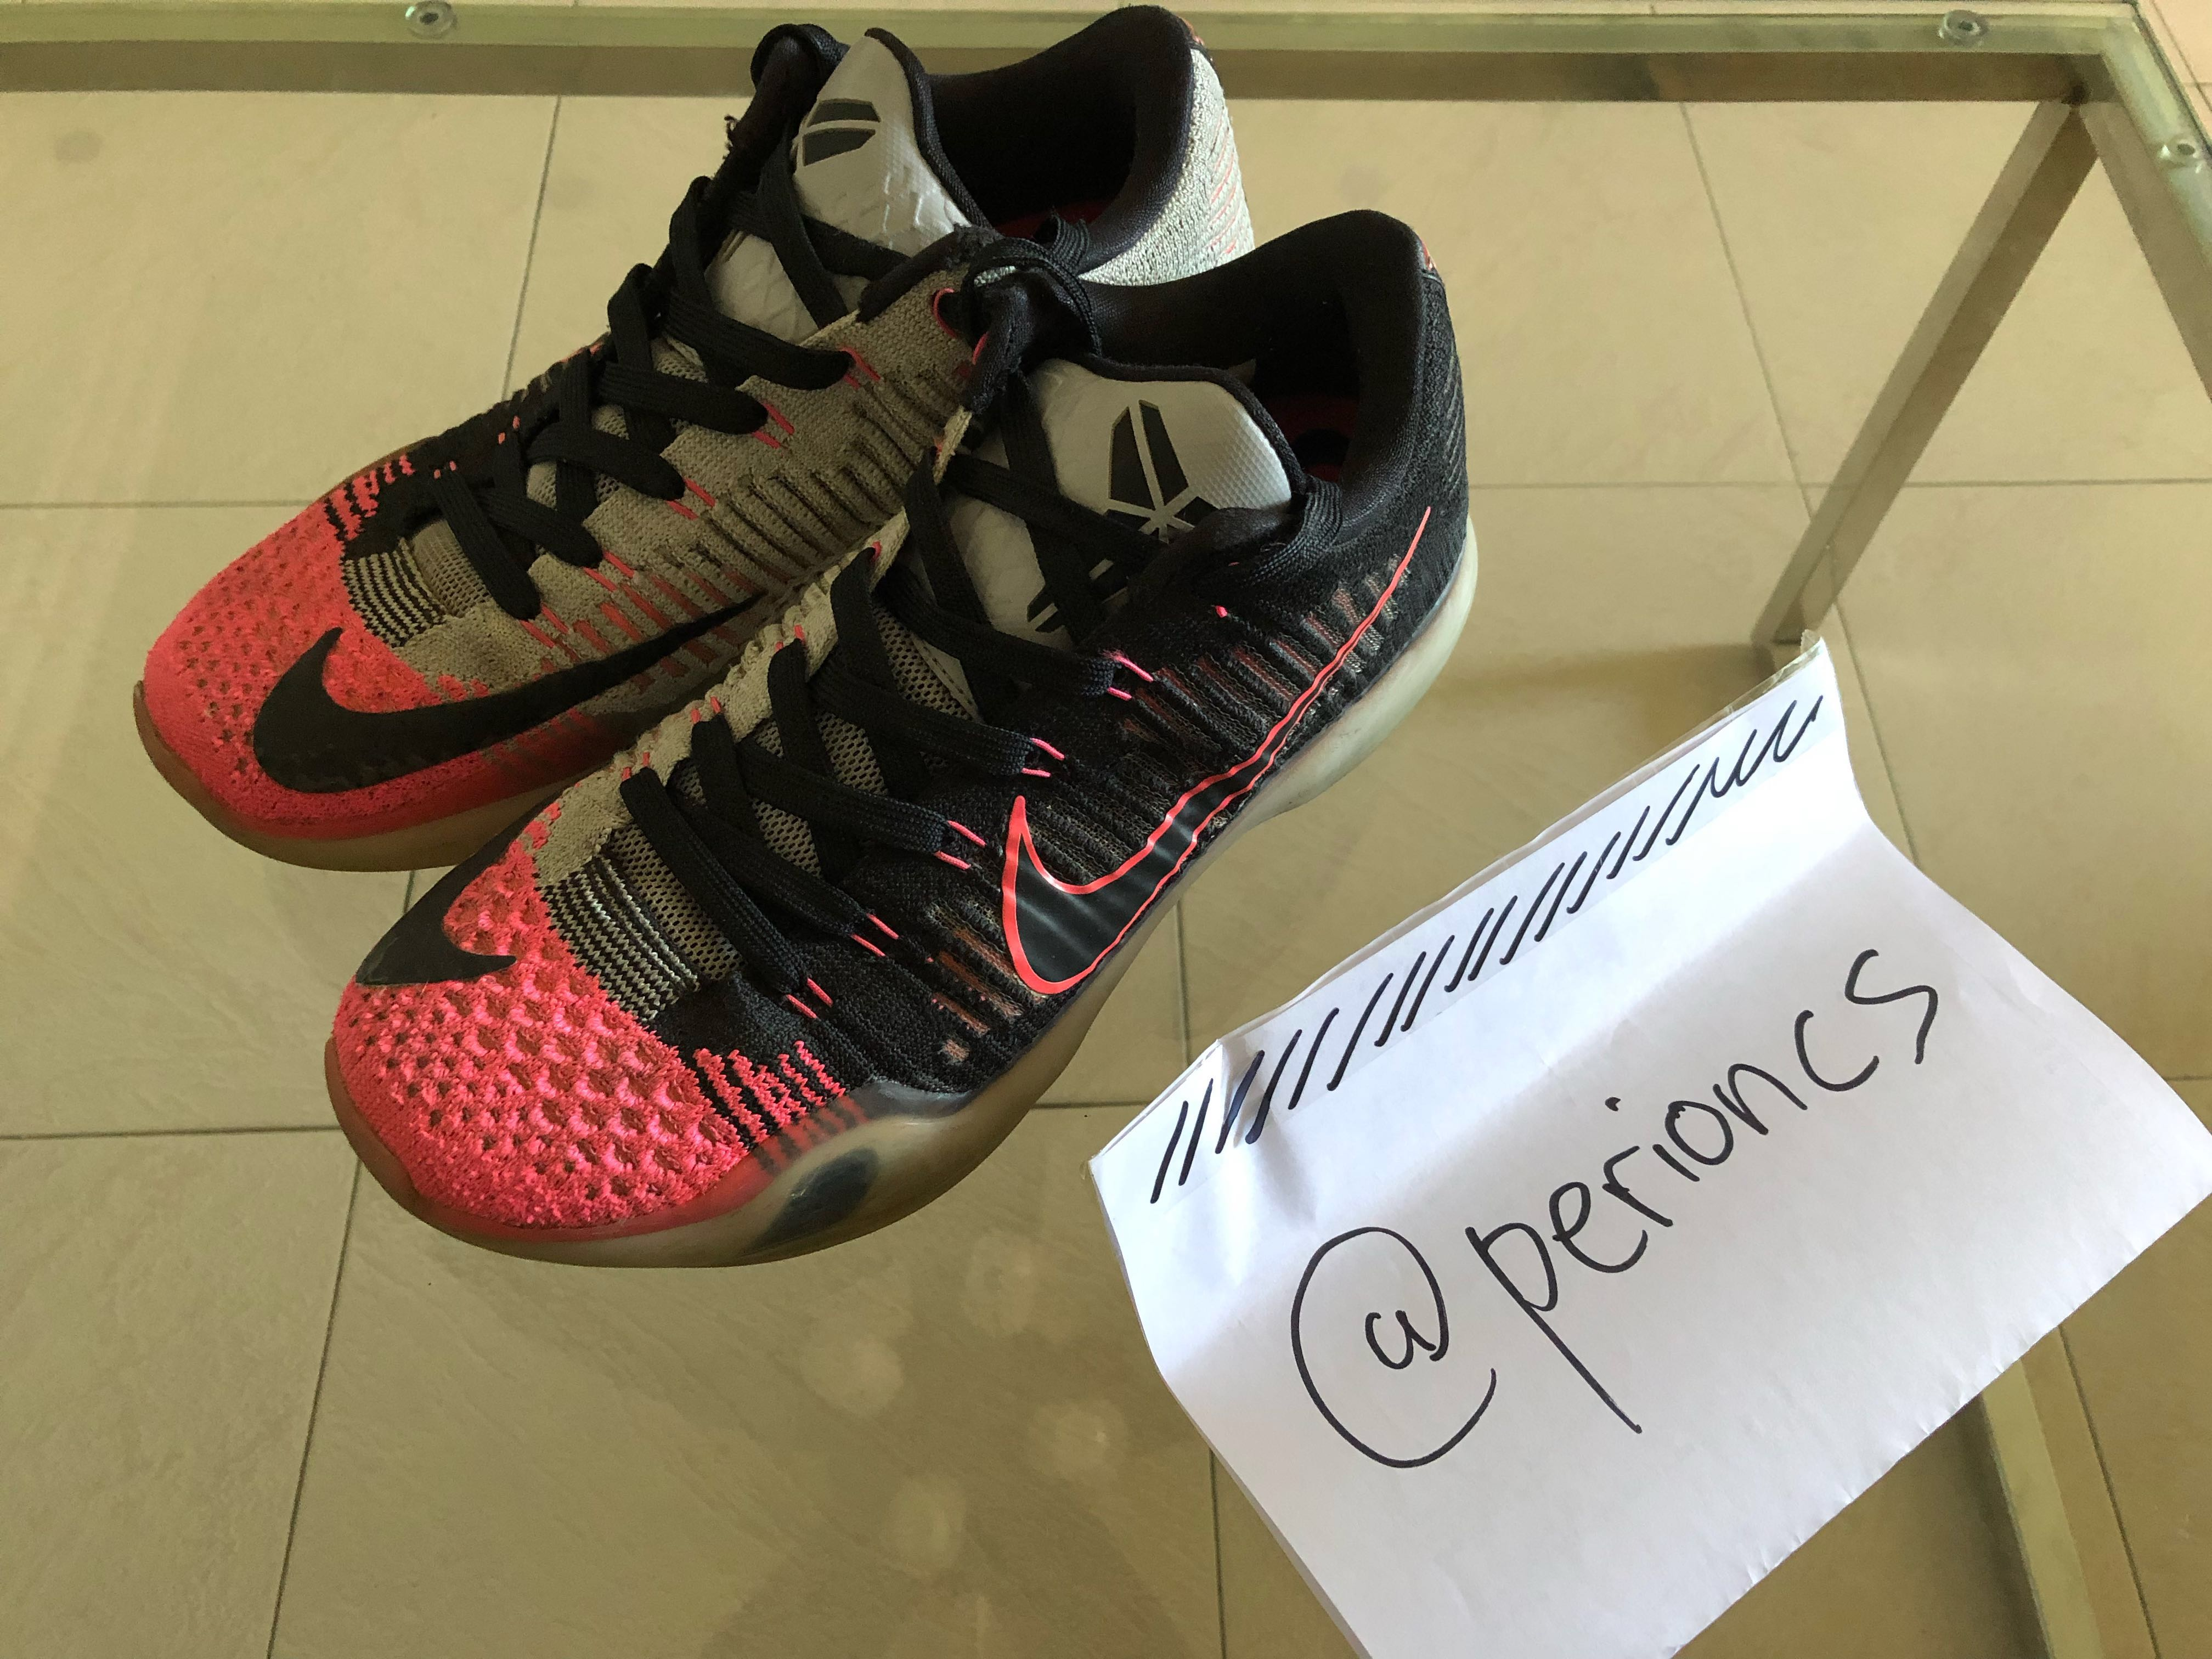 quality design 264dc 555ac Nike Kobe X 10 Elite Low   Mambacurial  , Men s Fashion, Footwear, Sneakers  on Carousell